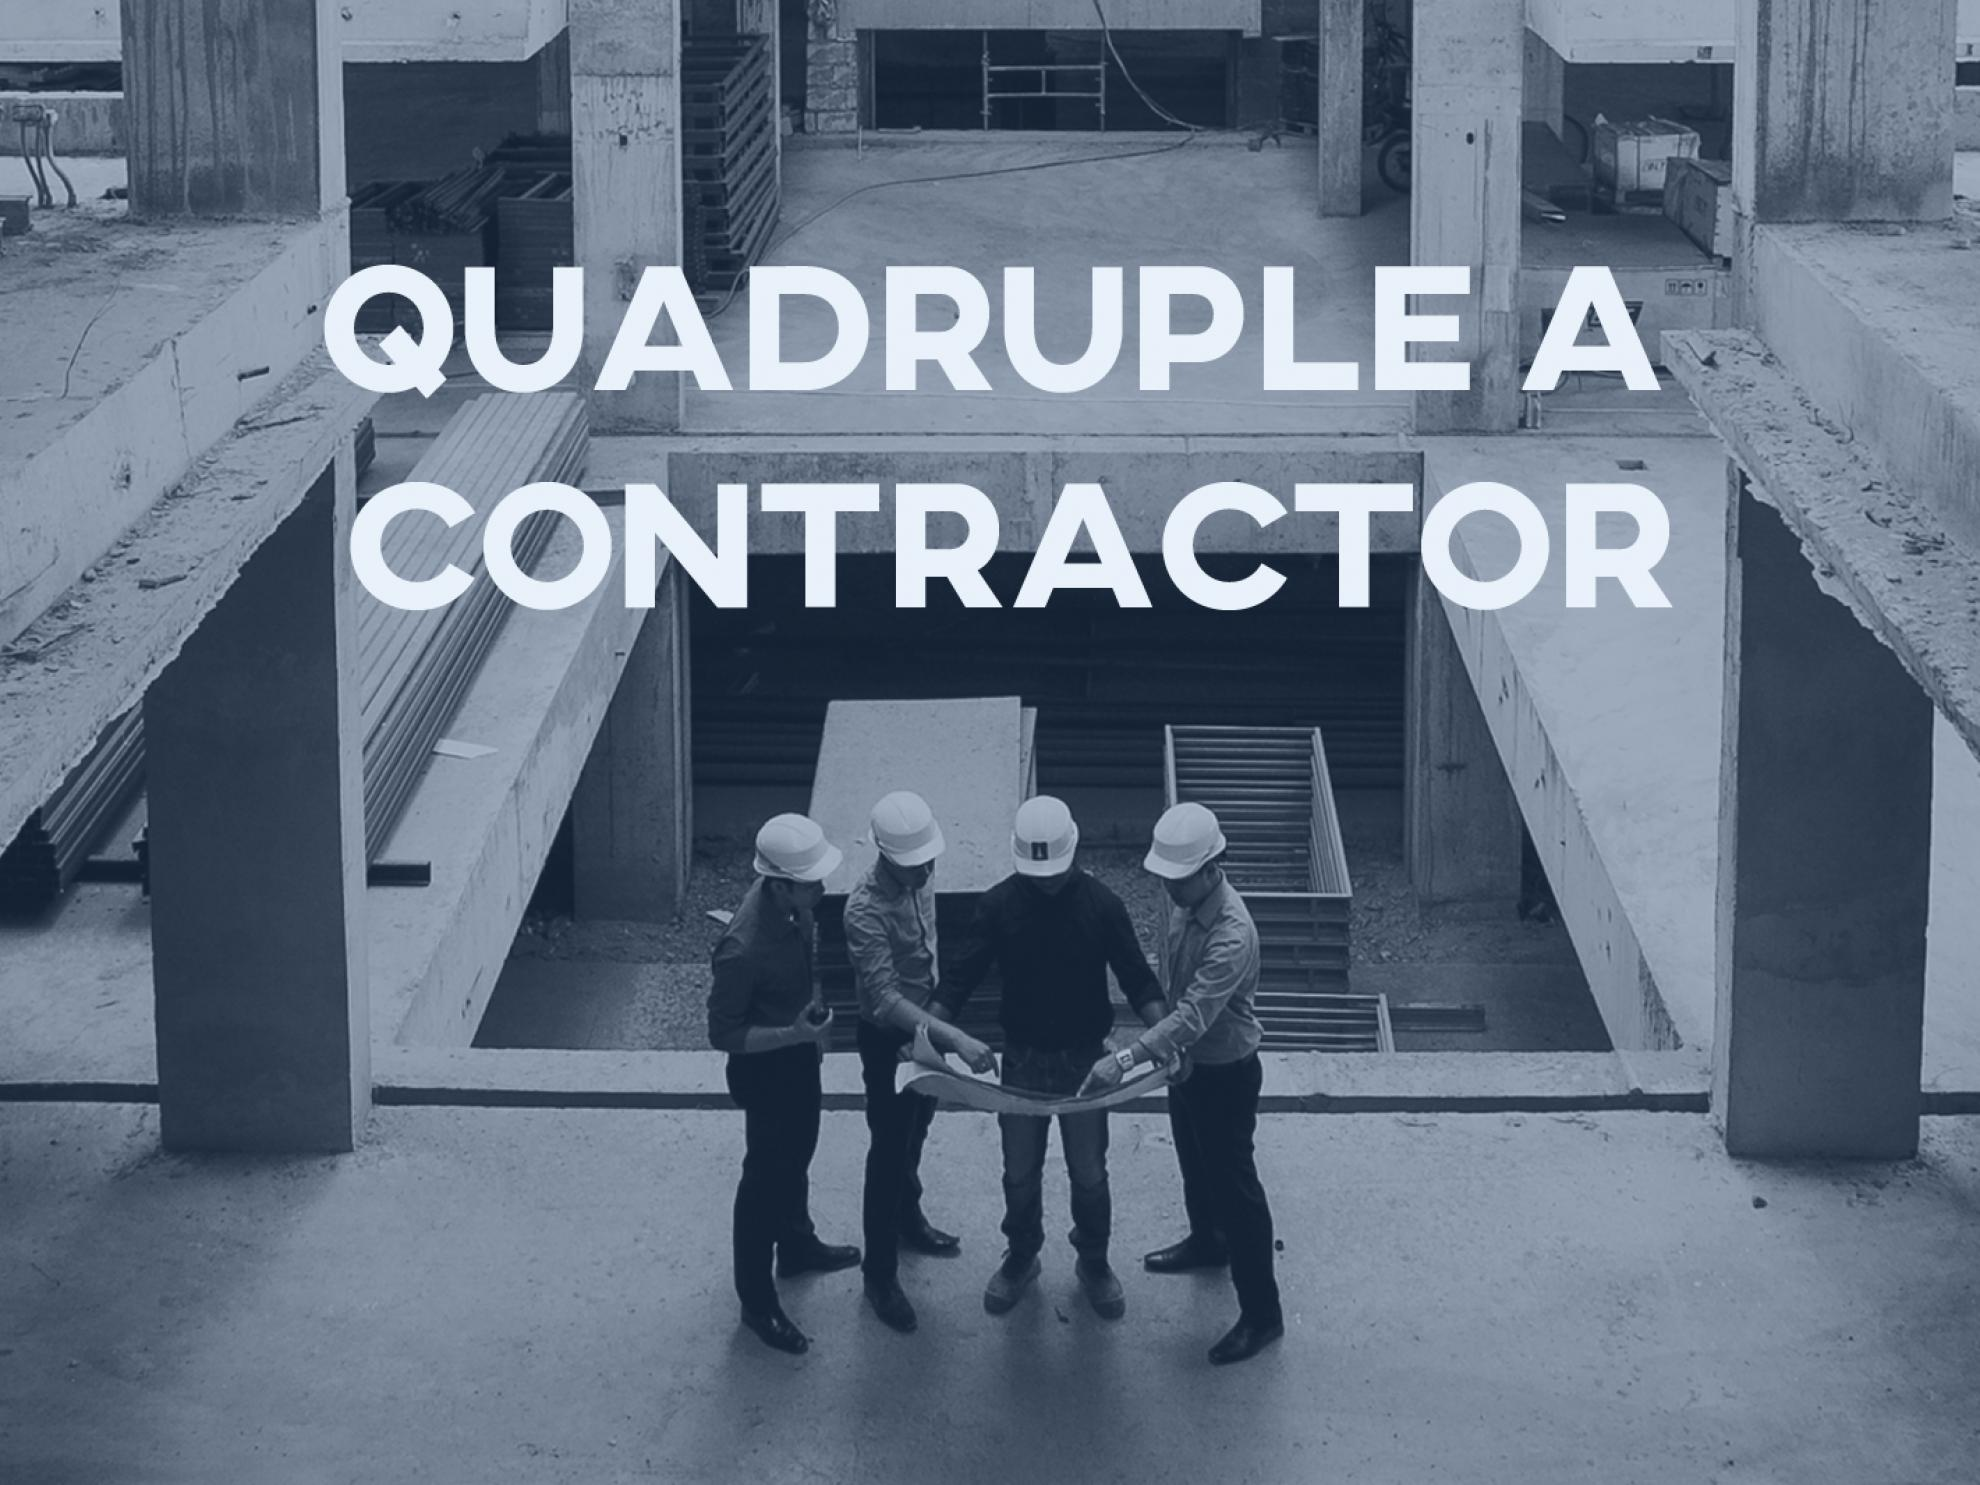 Quadruple A Contractor